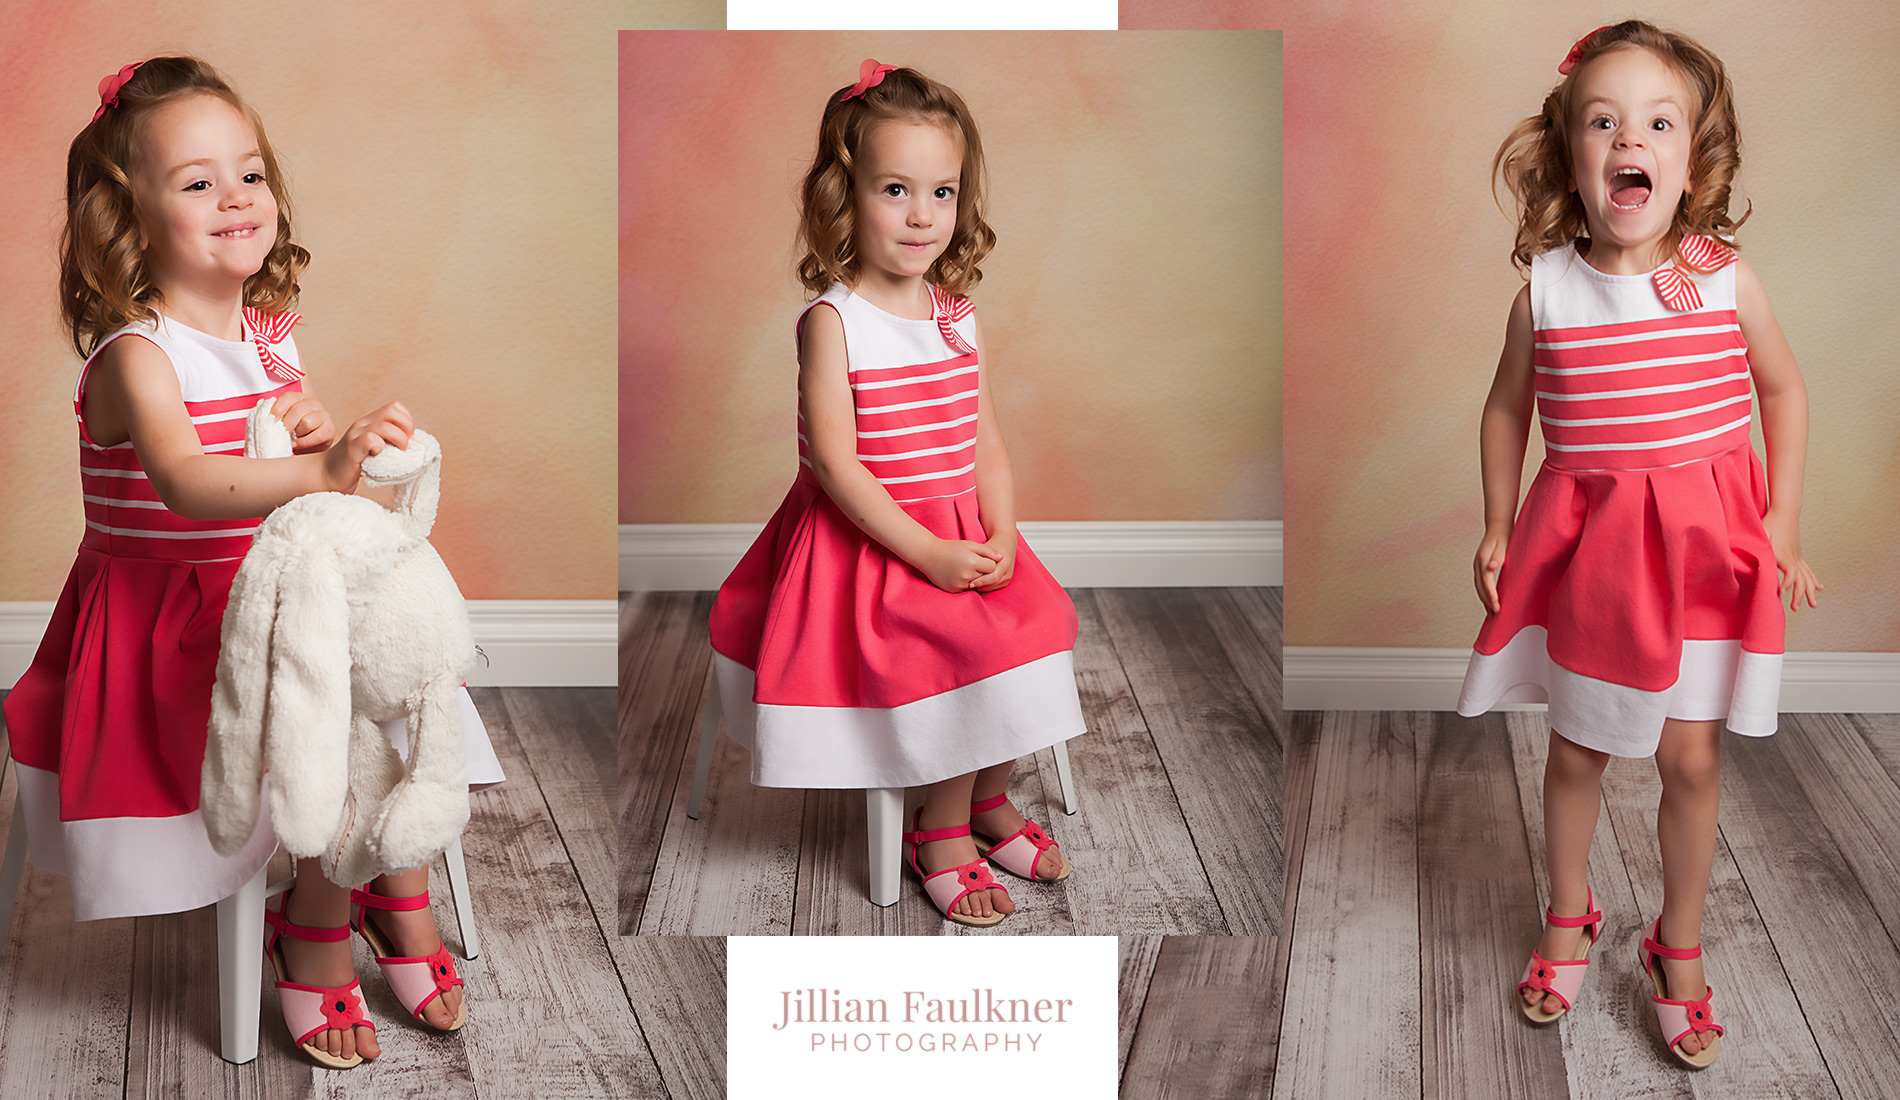 Calgary Photographer Jillian Faulkner offers studio session in southwest Calgary.